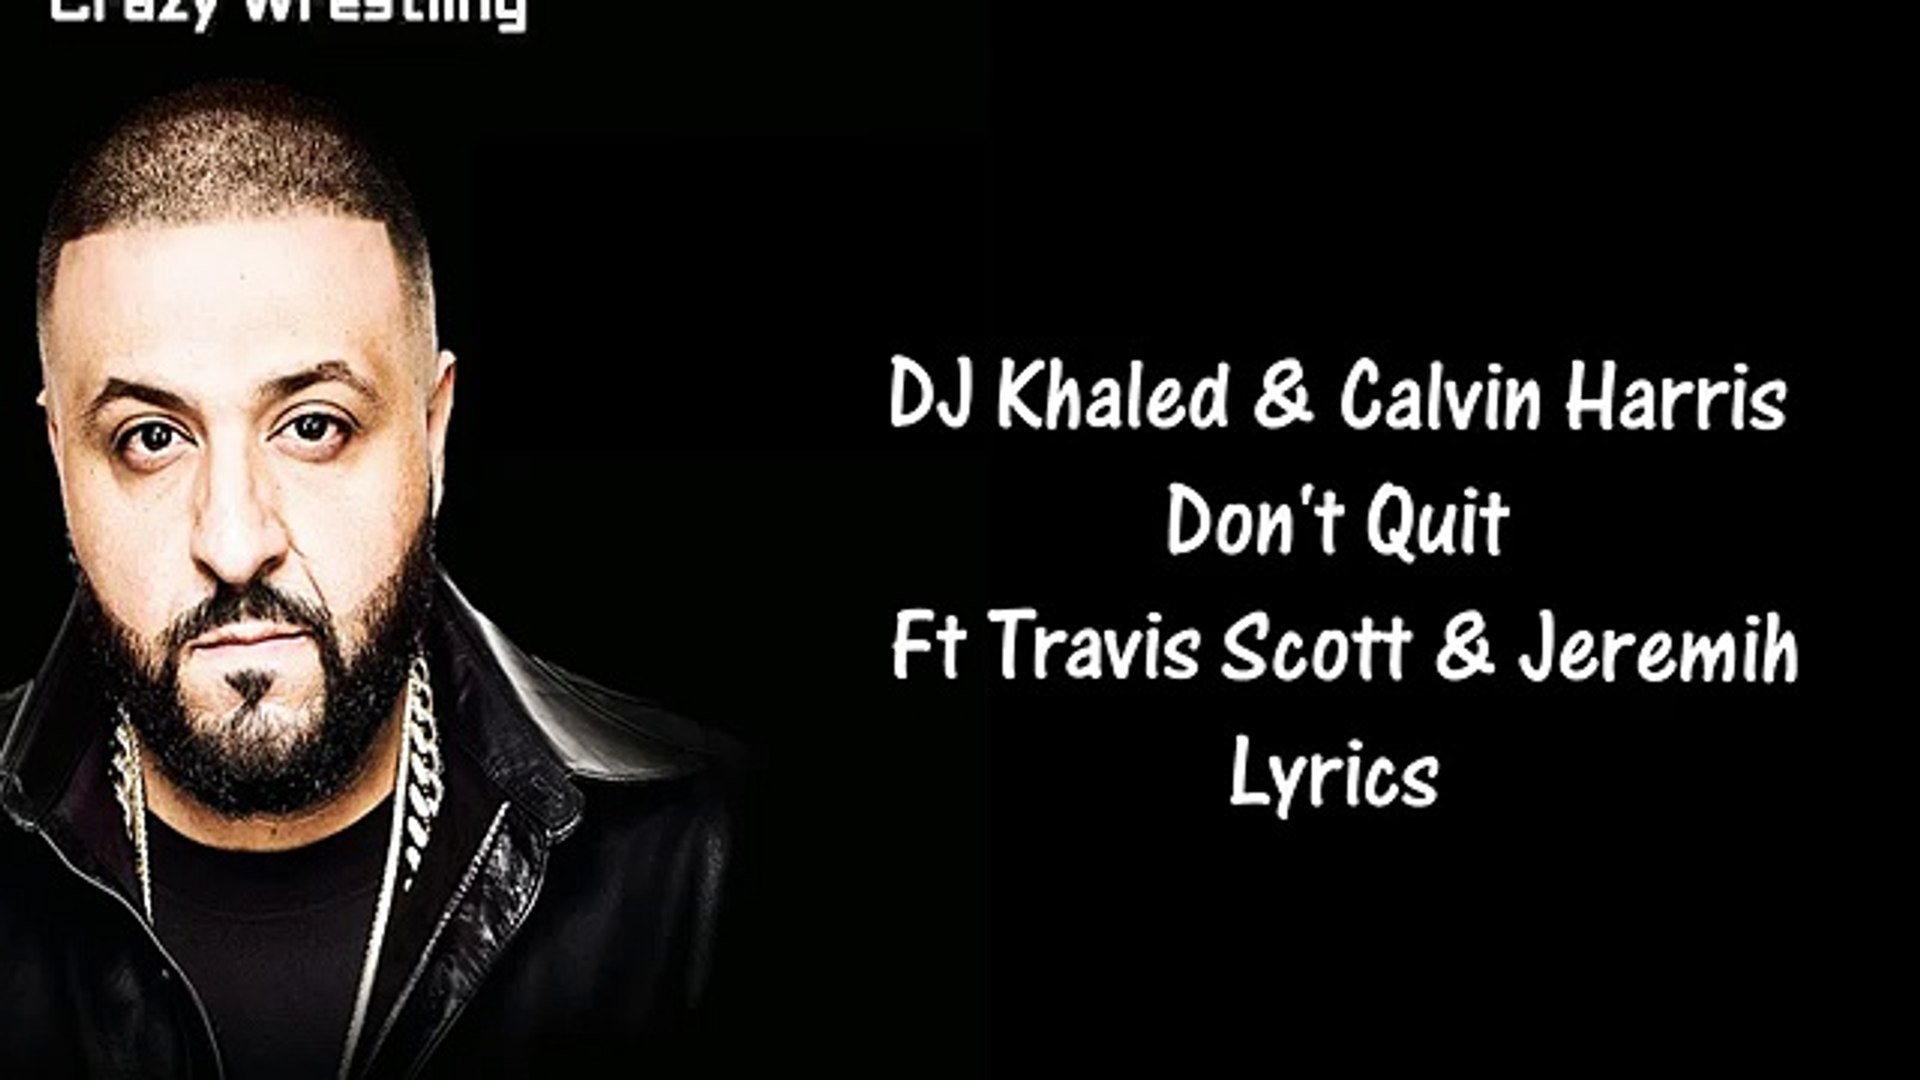 DJ Khaled & Calvin Harris - Don't Quit Ft Travis Scott & Jeremih Lyrics